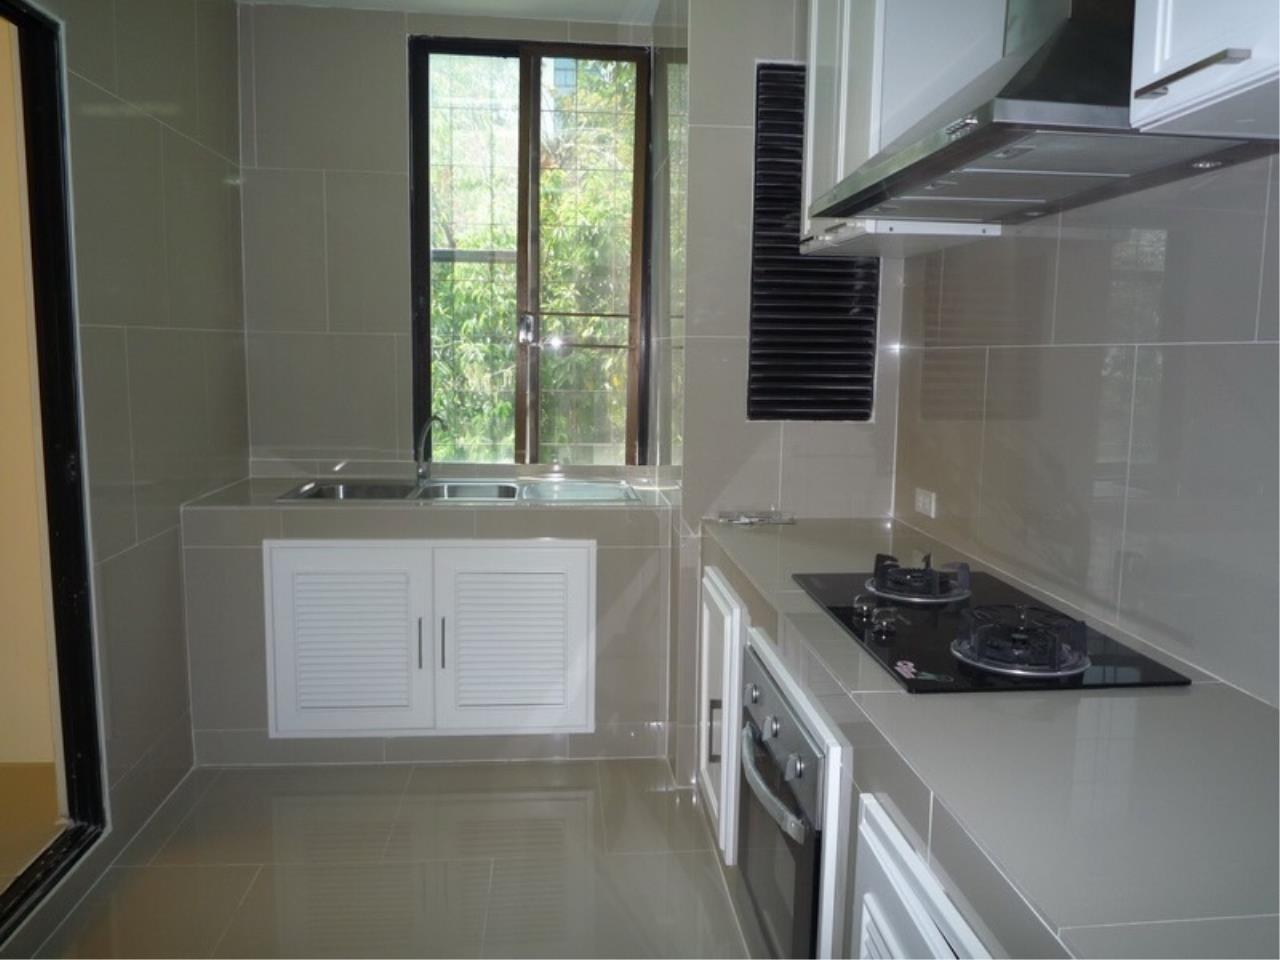 Right Move Thailand Agency's HR 695 Townhouse For Sale 19,900,000 THB 3 Bedrooms 380 Sqm 7